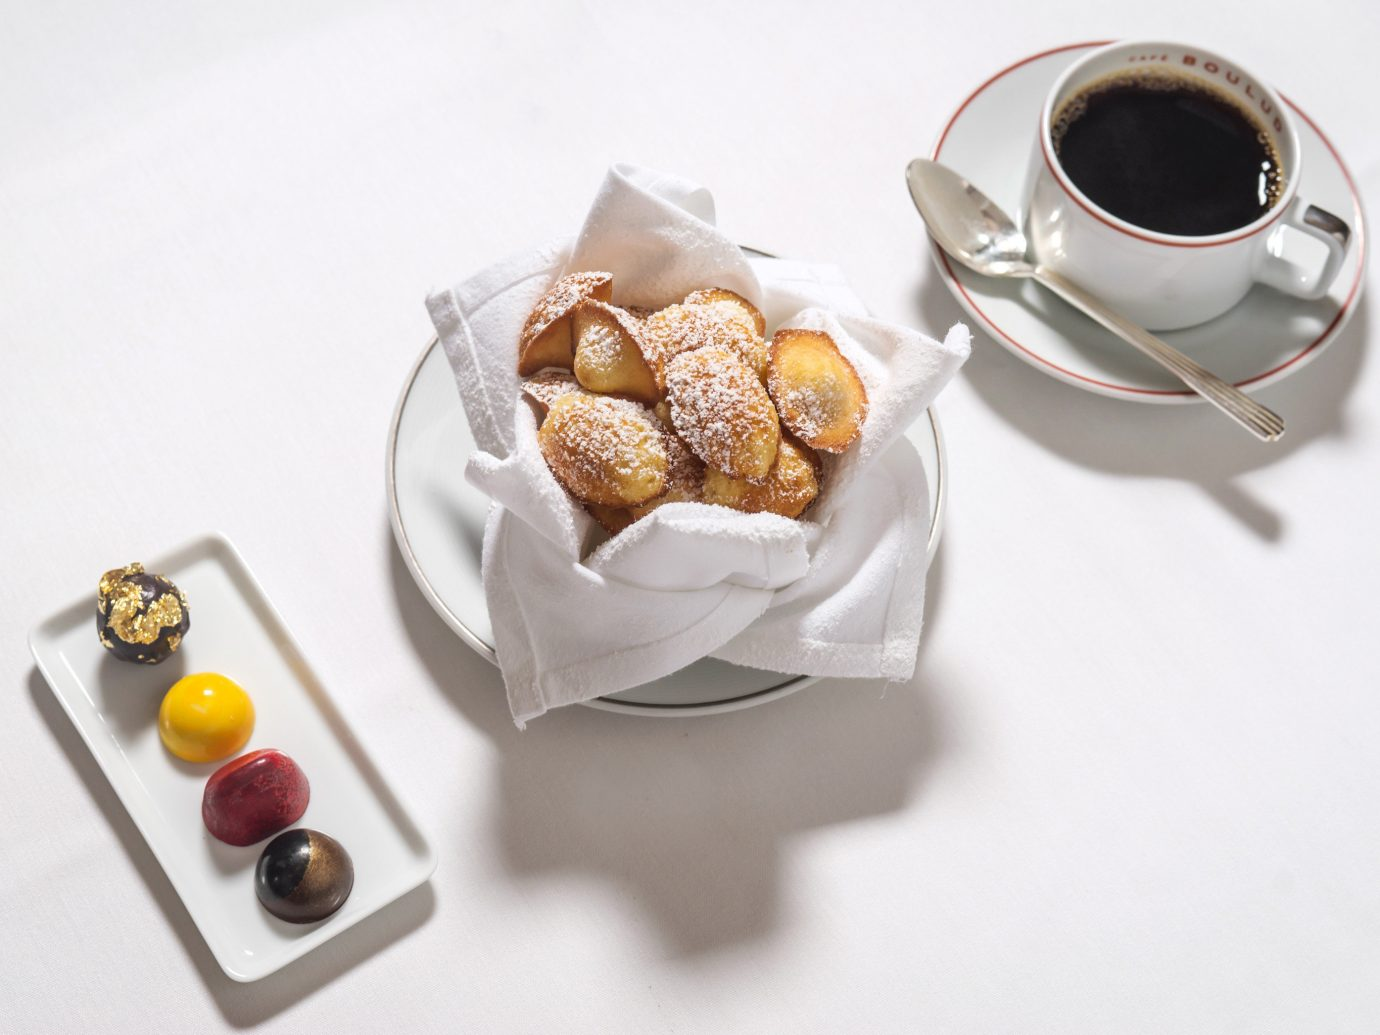 Food + Drink table cup plate food pastry dessert meal produce praline chocolate tray